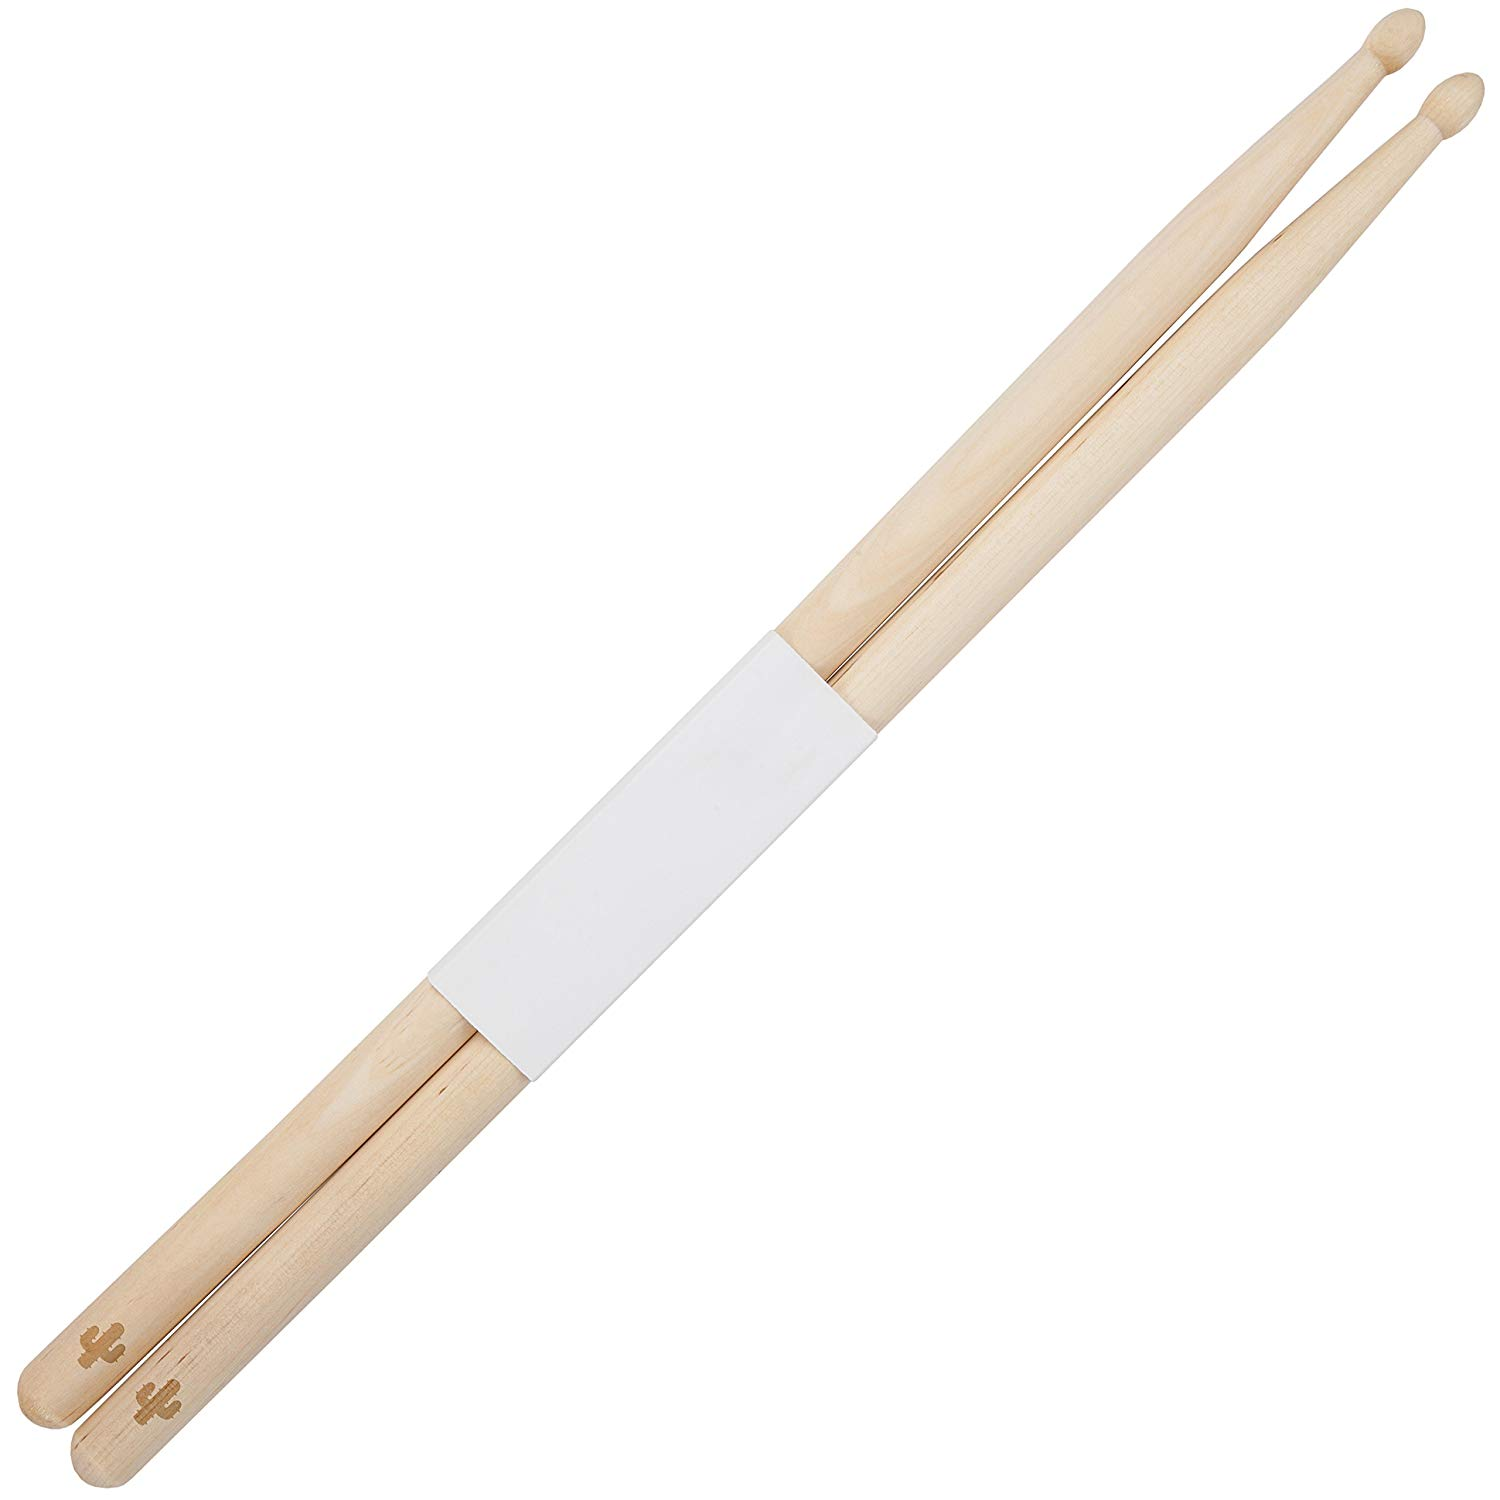 Cactus 5B Maple Drumsticks With Laser Engraved Design - Durable Drumstick Set With Wooden Tip - Wood Drumsticks Gift